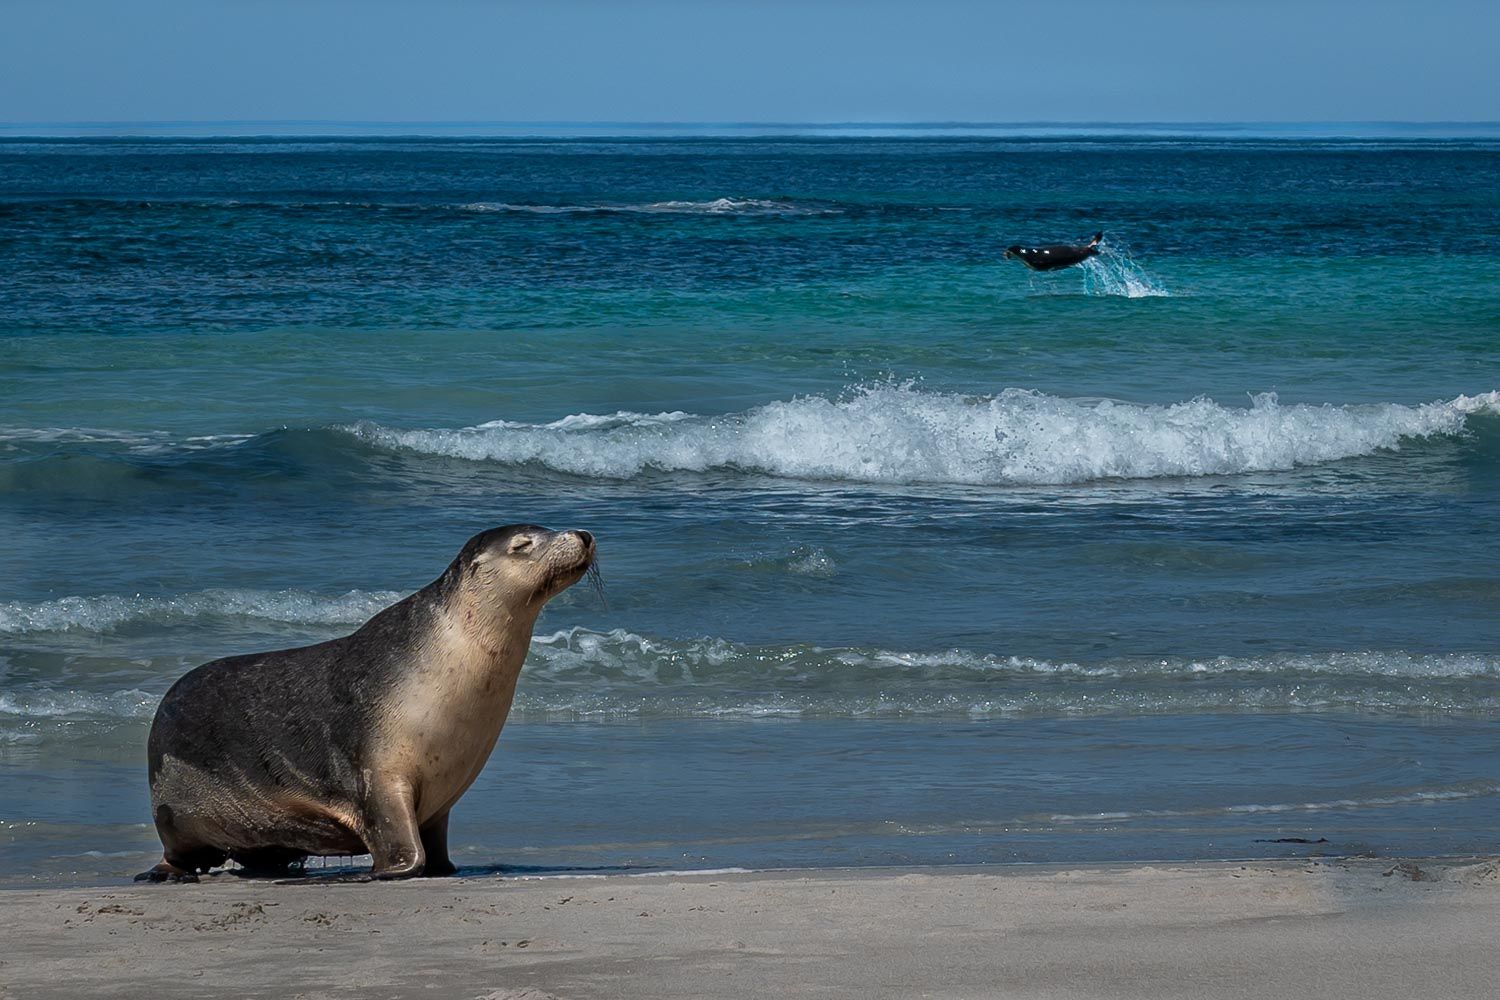 Sea lions at Kangaroo Island, Australia.